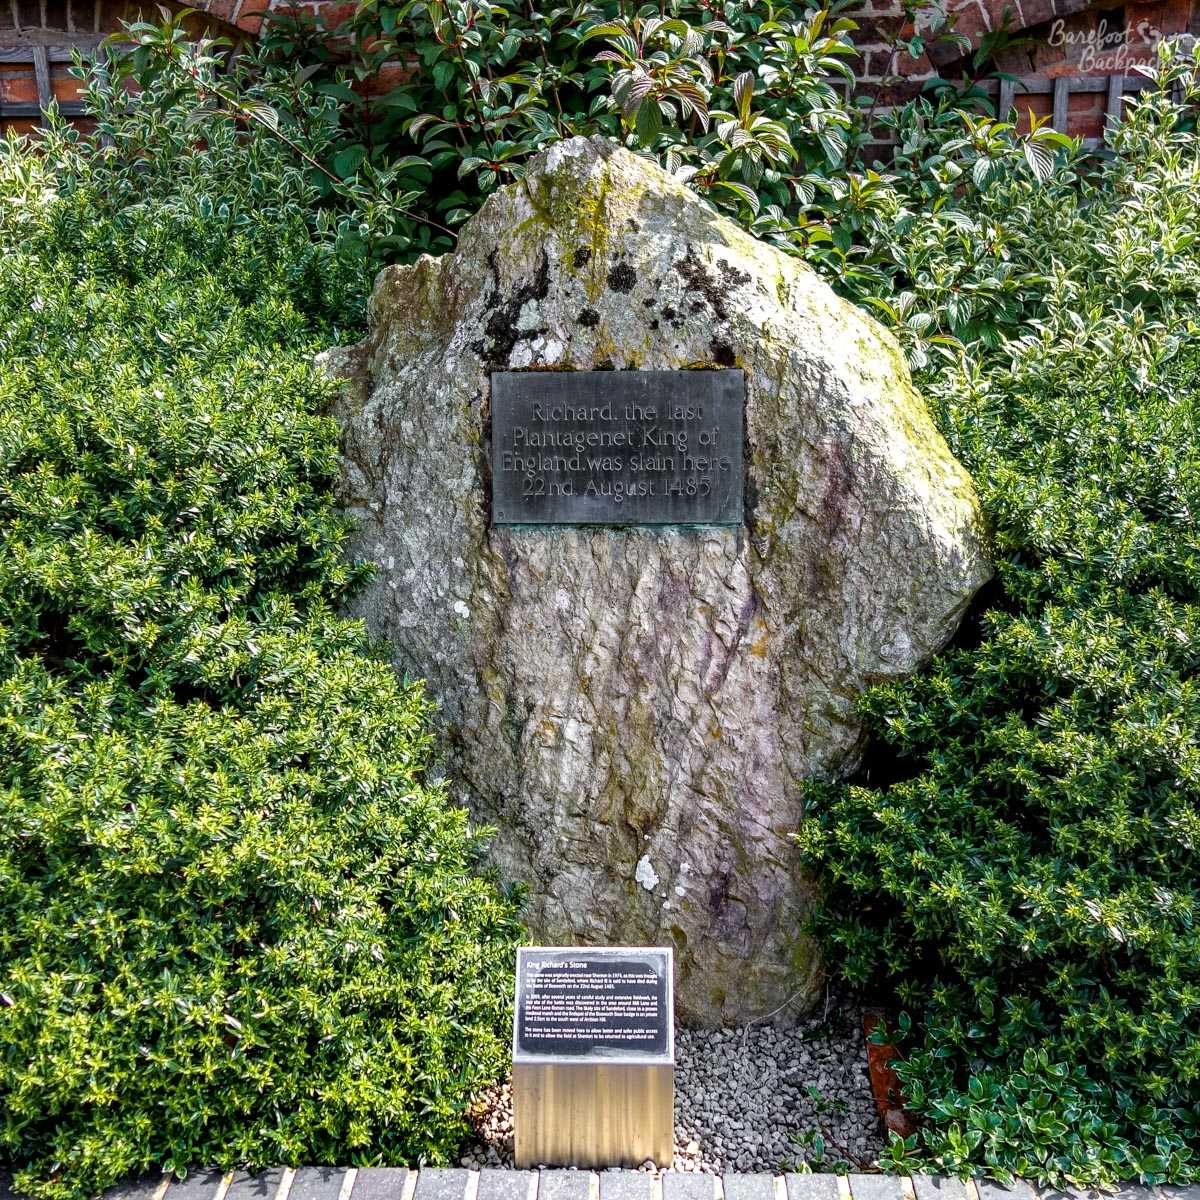 King Richard III's memorial stone.